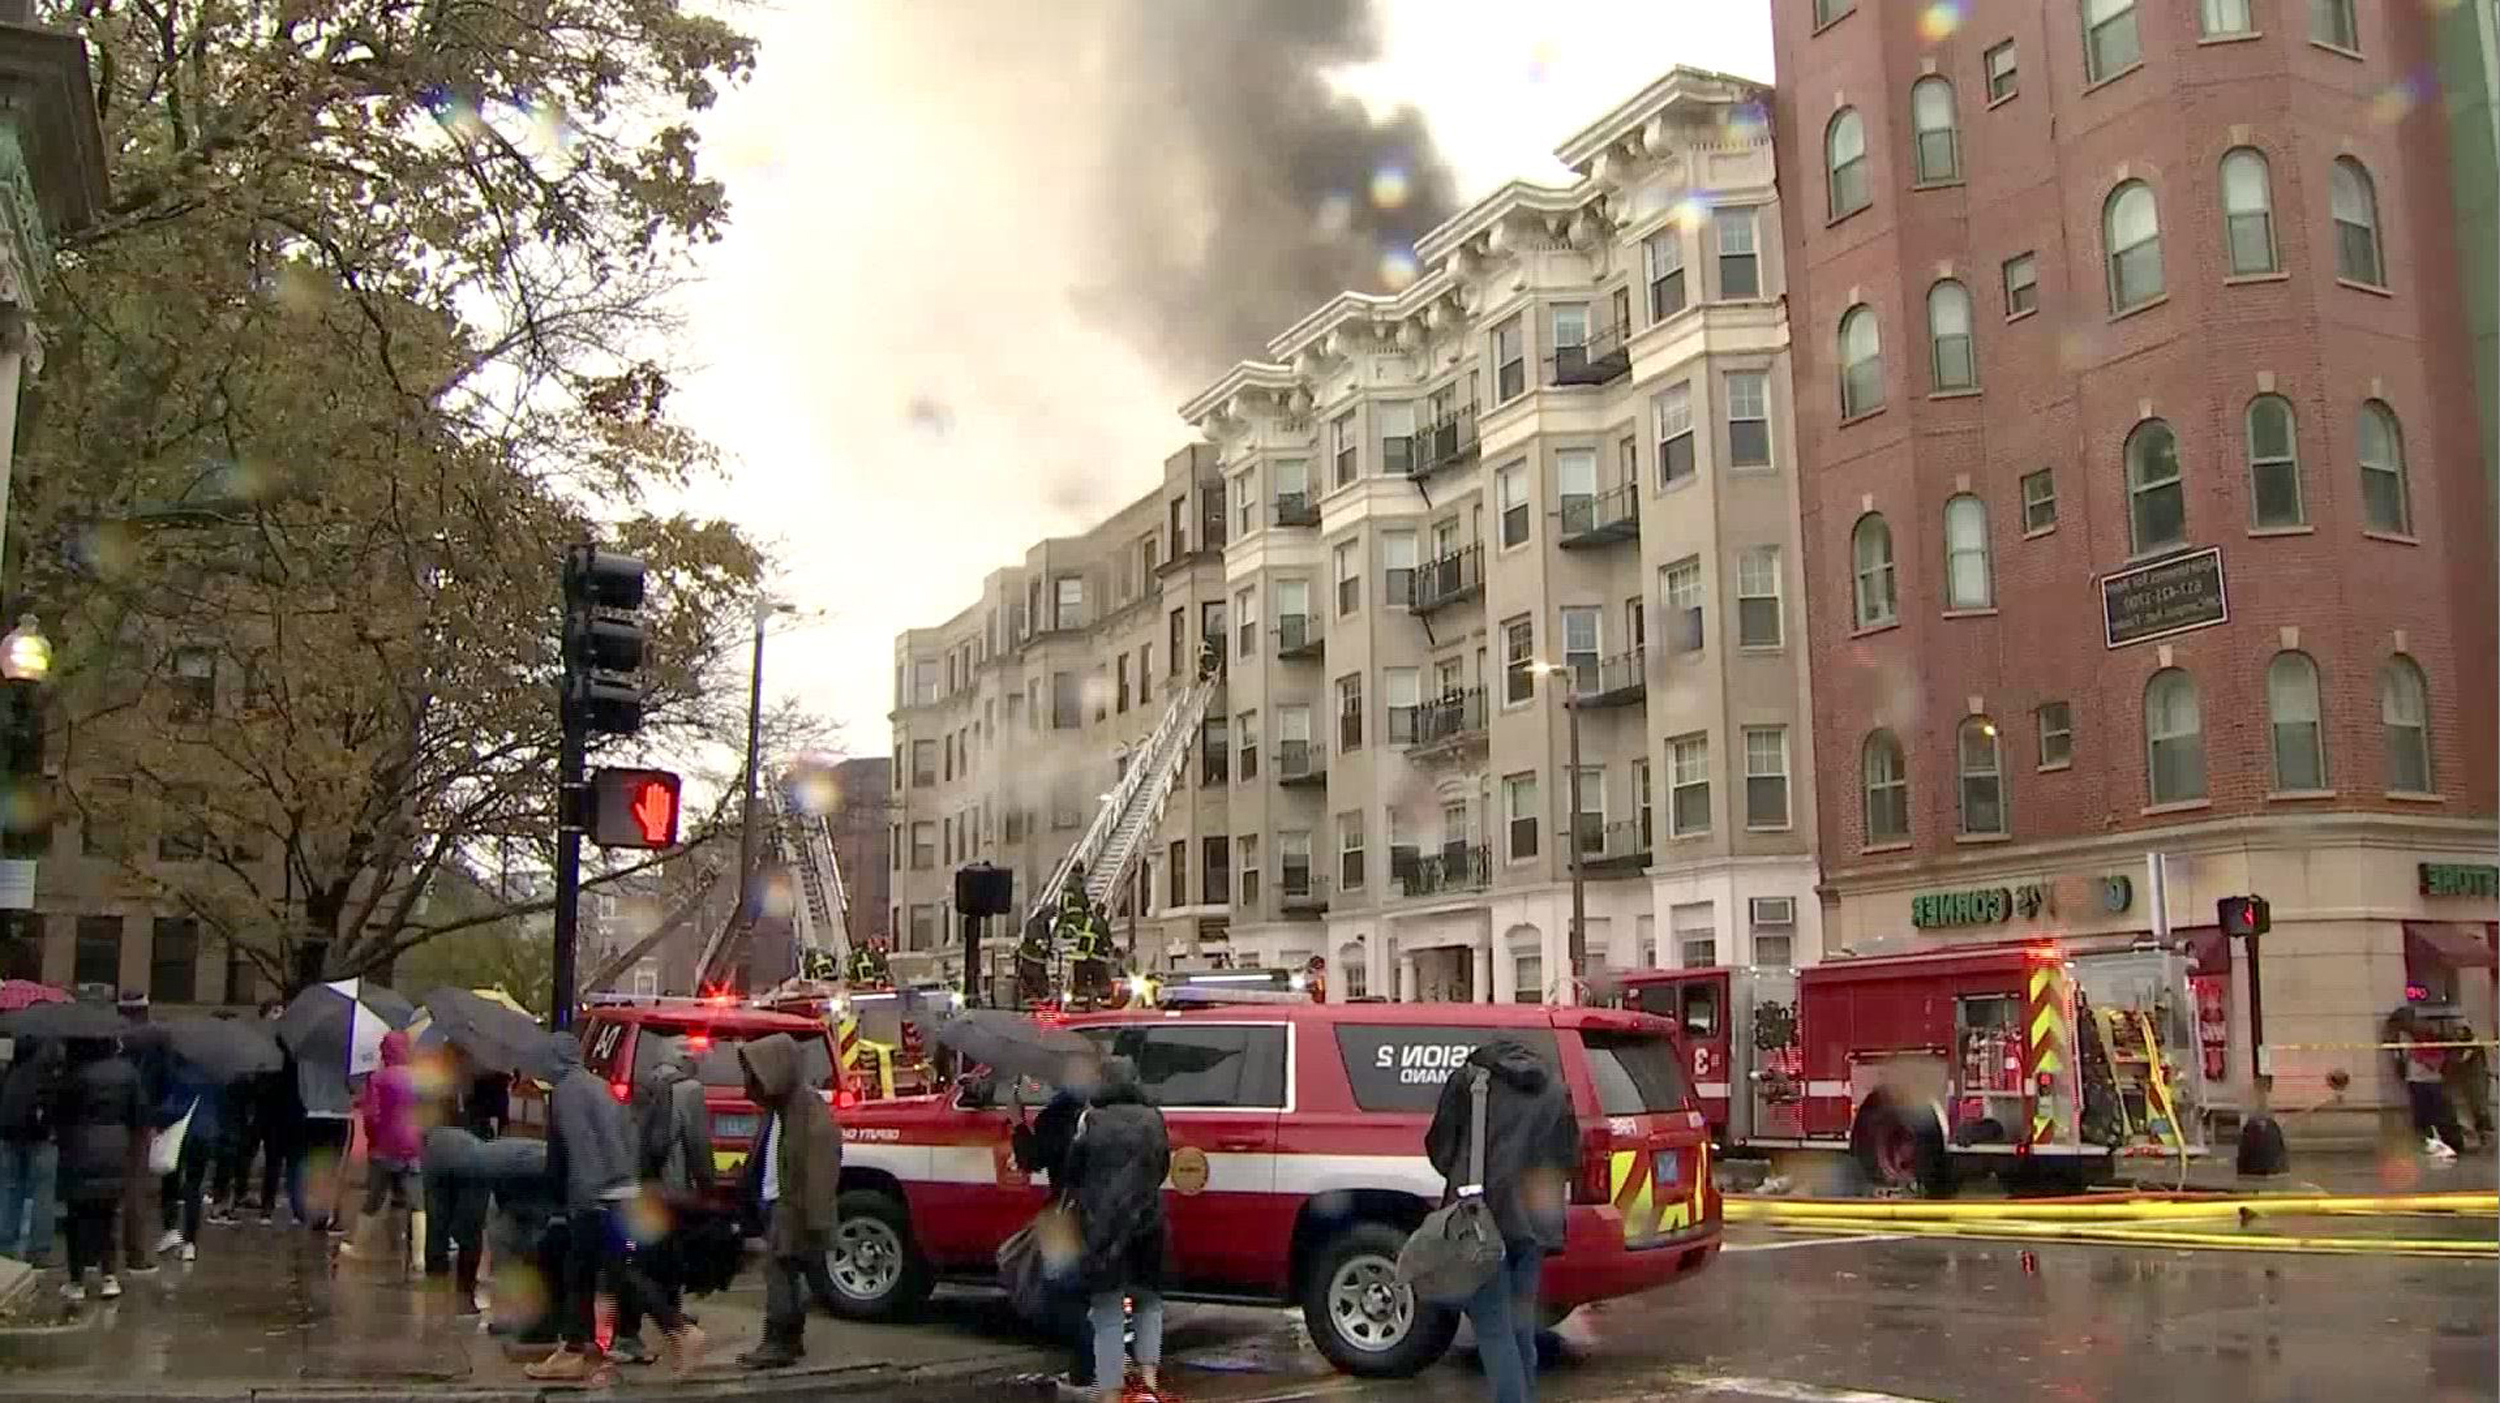 70 students displaced after fire blazes through Boston apartment building